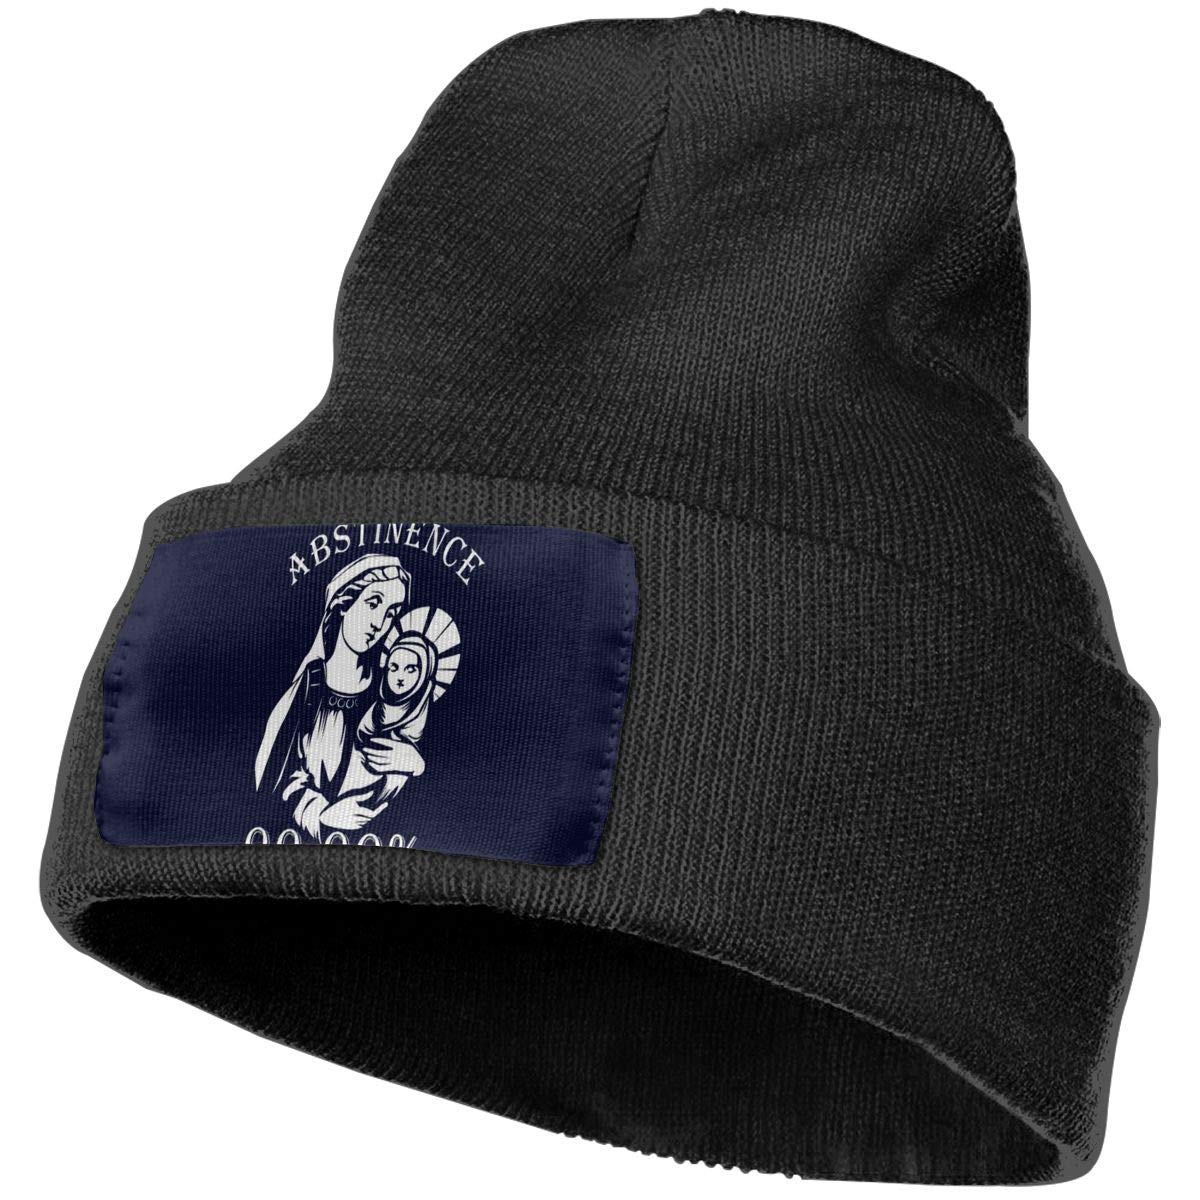 JimHappy Abstinence Effective Winter Warm Hats,Knit Slouchy Thick Skull Cap Black